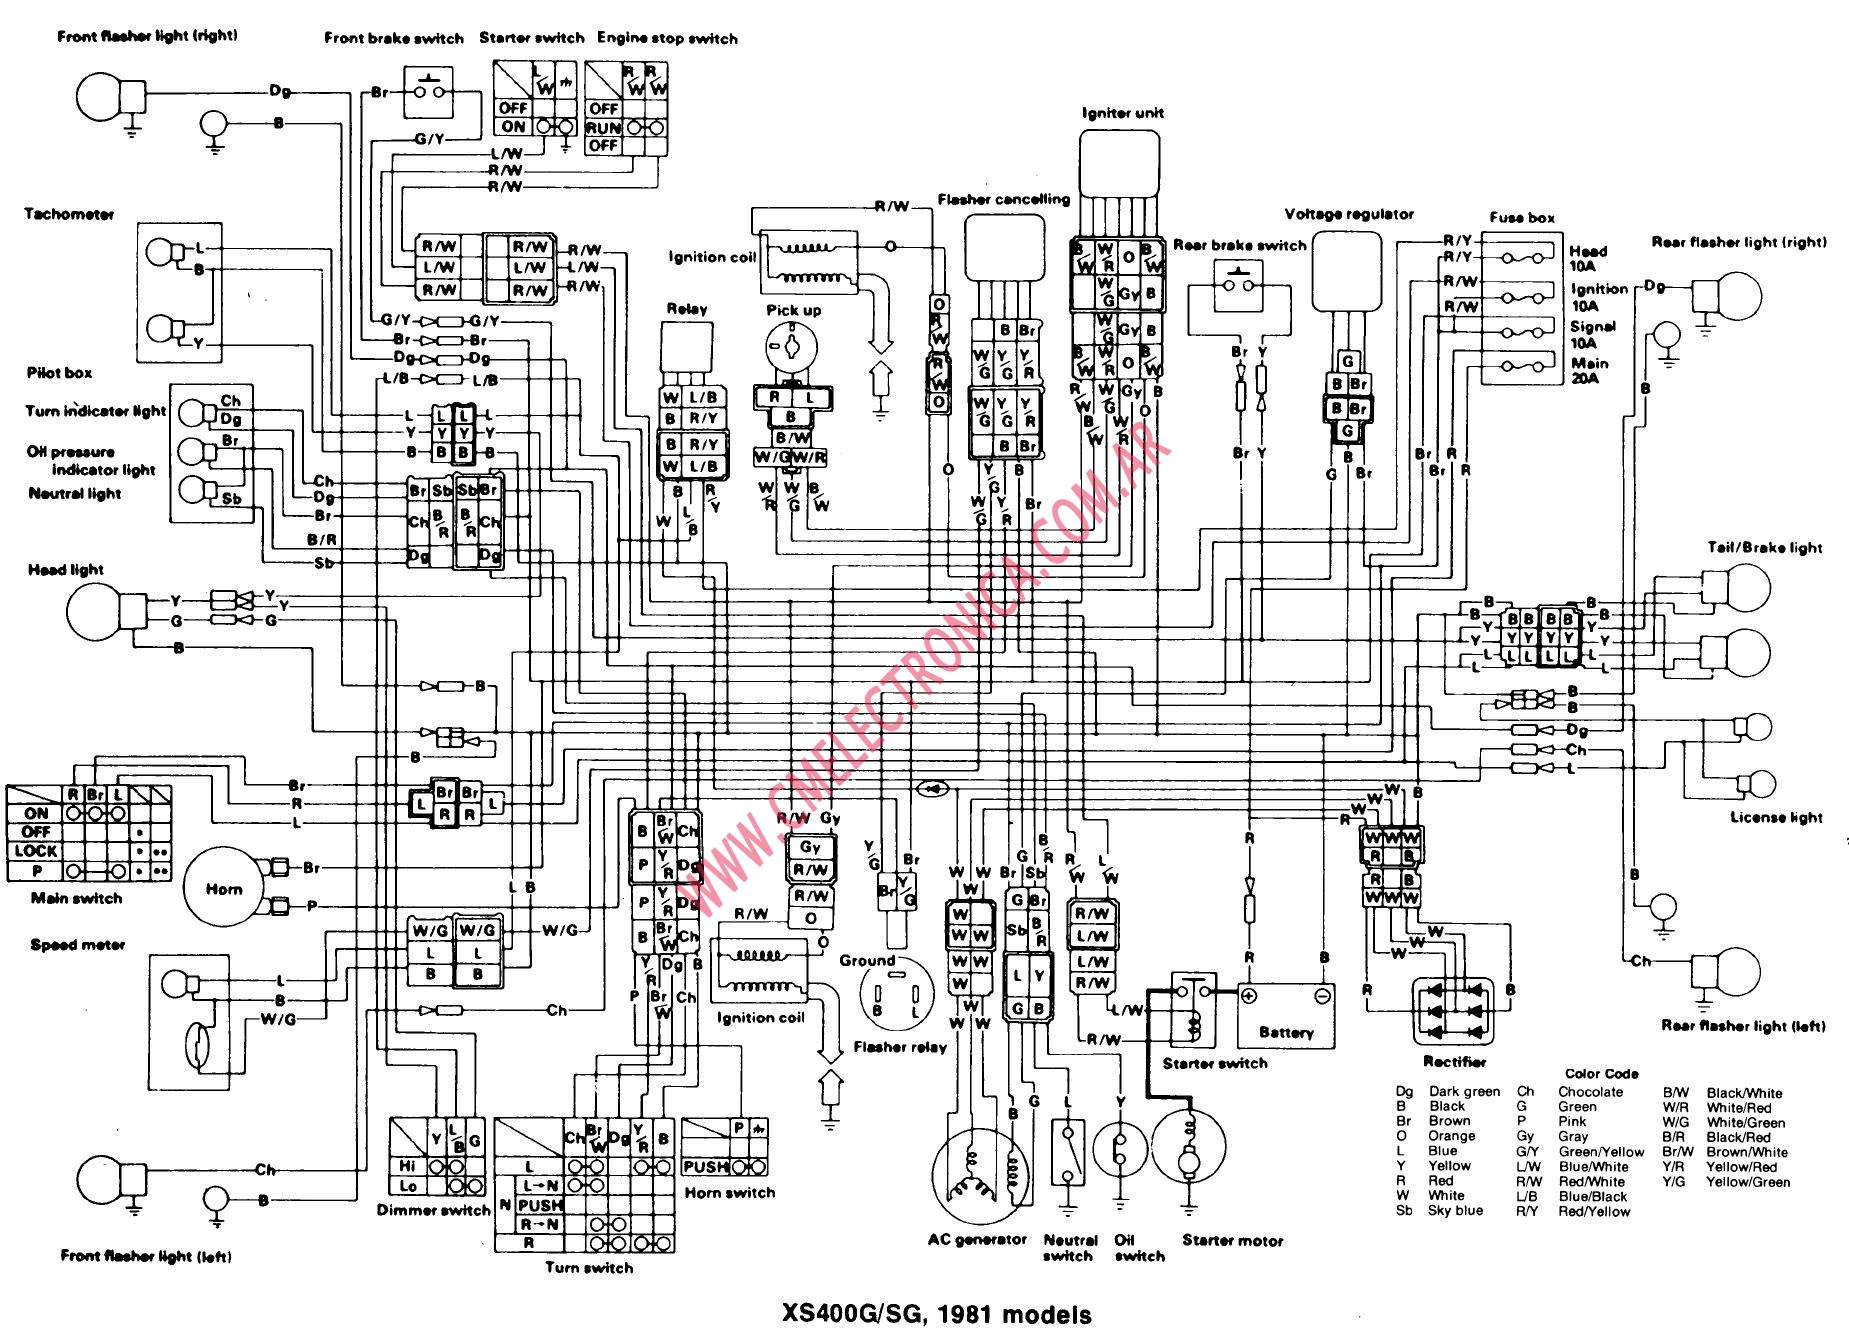 DIAGRAM] Wiring Diagram Yamaha Xs400 FULL Version HD Quality Yamaha Xs400 -  THROATDIAGRAM.SAINTMIHIEL-TOURISME.FRSaintmihiel-tourisme.fr